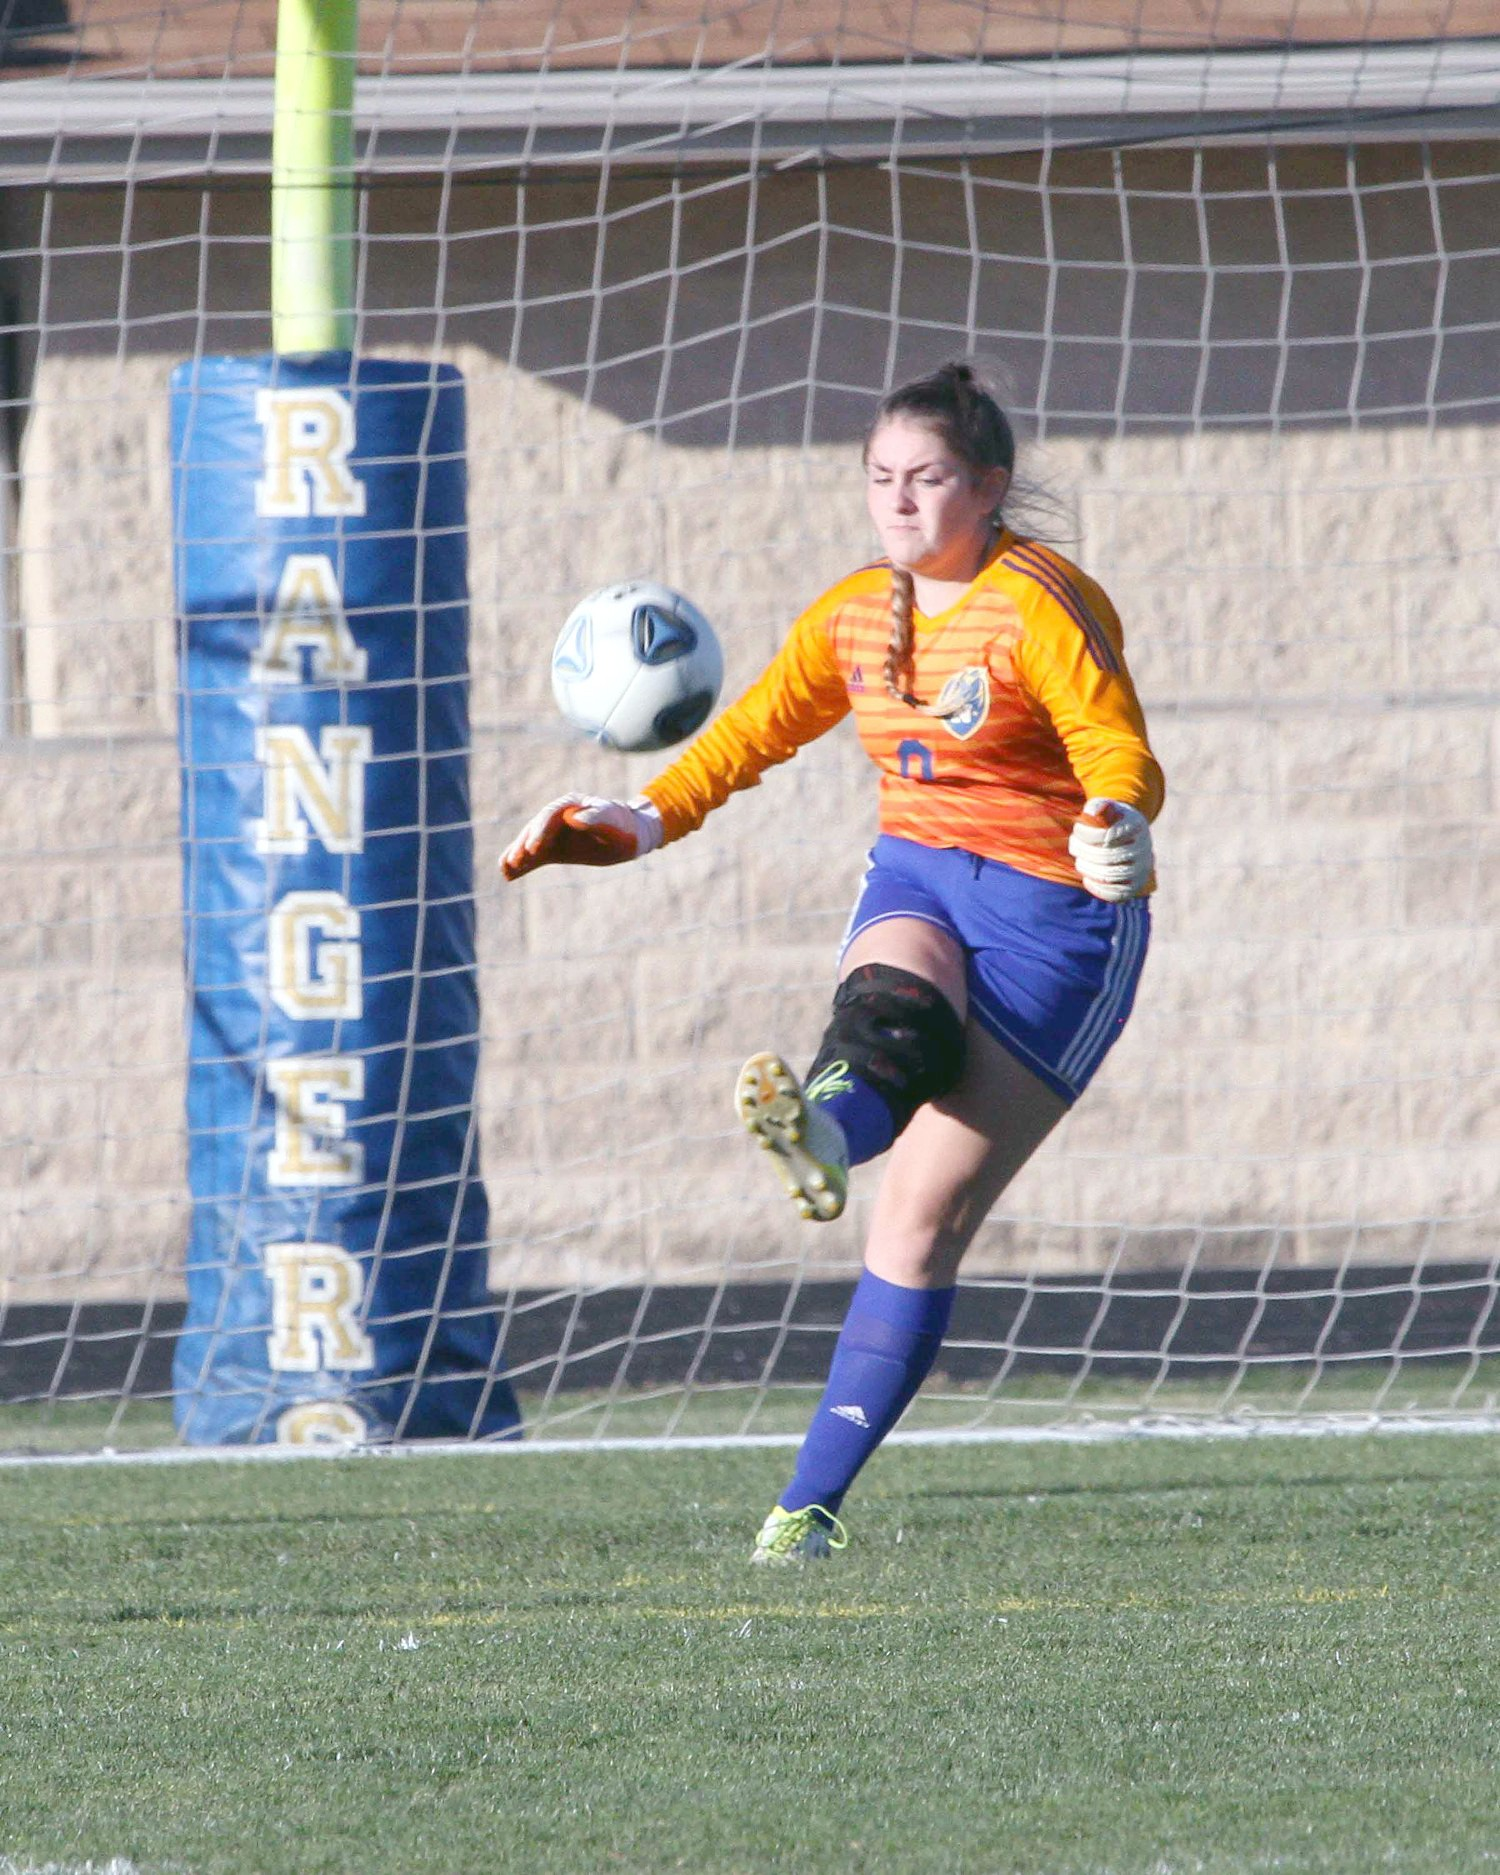 """Northwood goalkeeper Zoe Turner. (Press file photo by Don Thompson/<a href=""""http://www.Facebook.com/DNRSport"""">www.Facebook.com/DNRSport</a>)"""